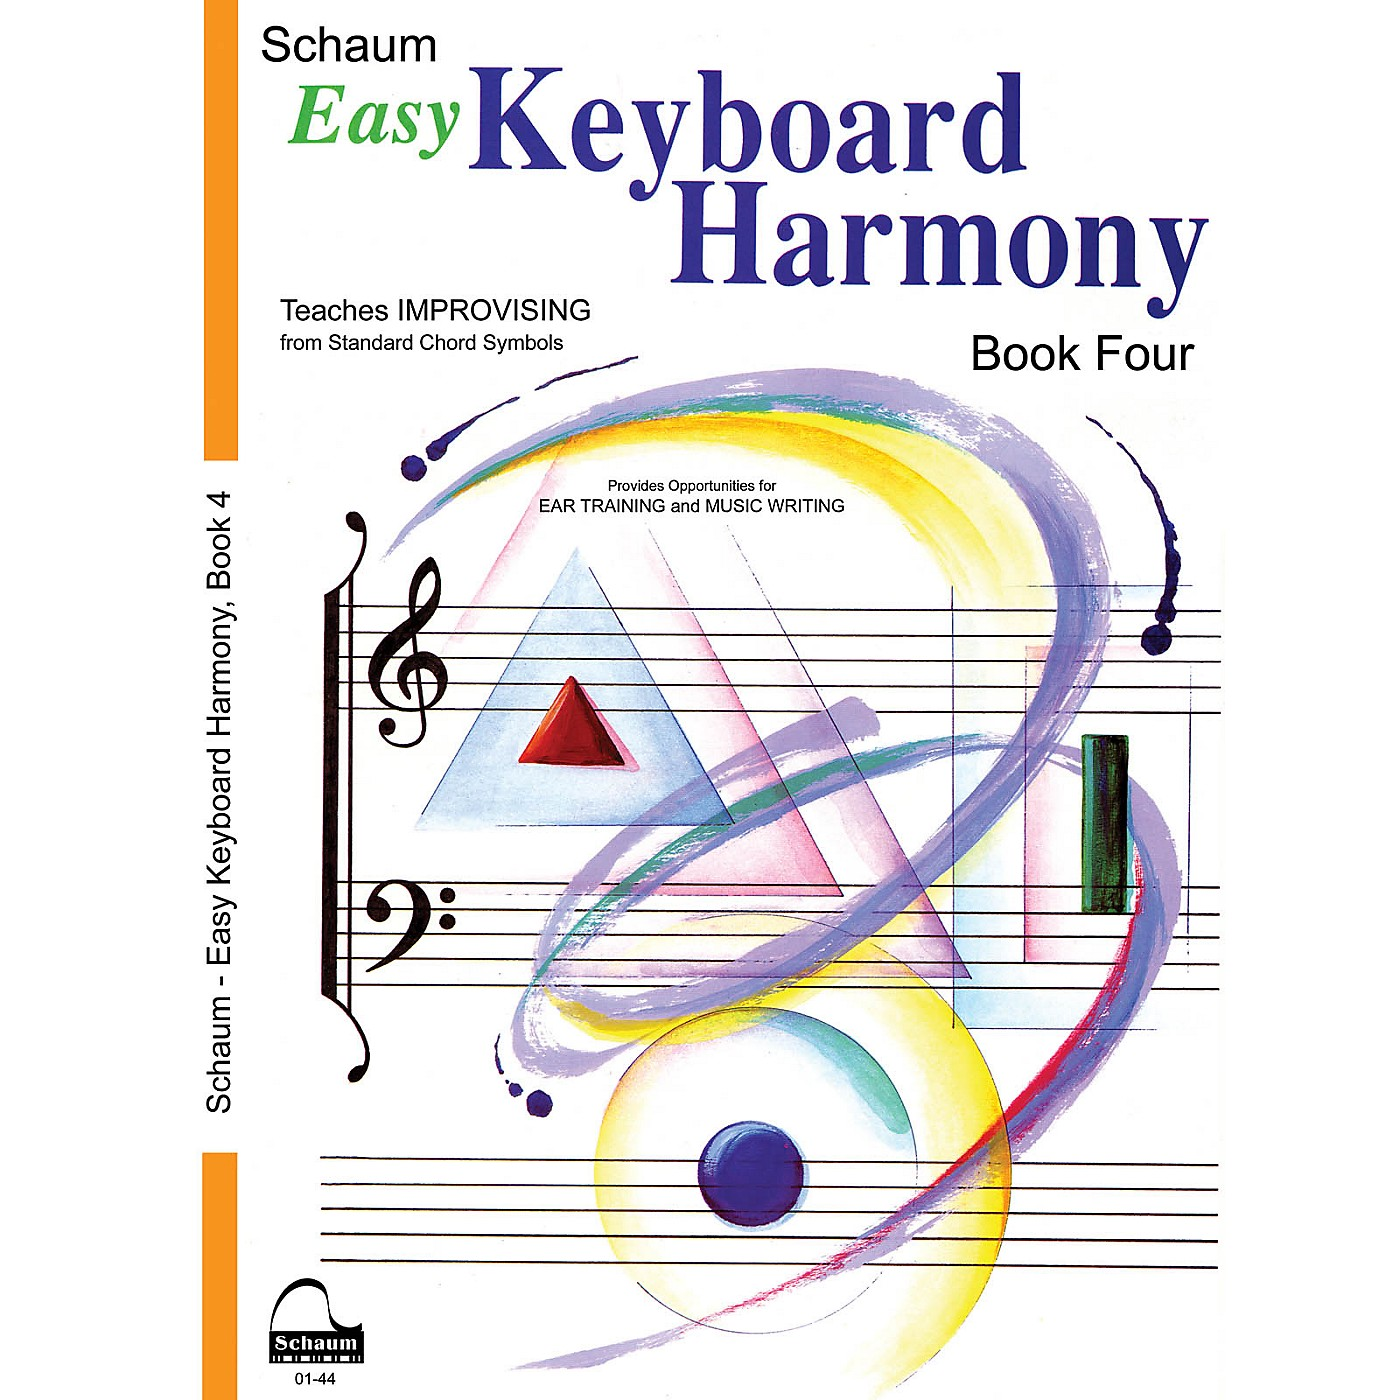 SCHAUM Easy Keyboard Harmony (Book 4 Inter Level) Educational Piano Book by Wesley Schaum thumbnail